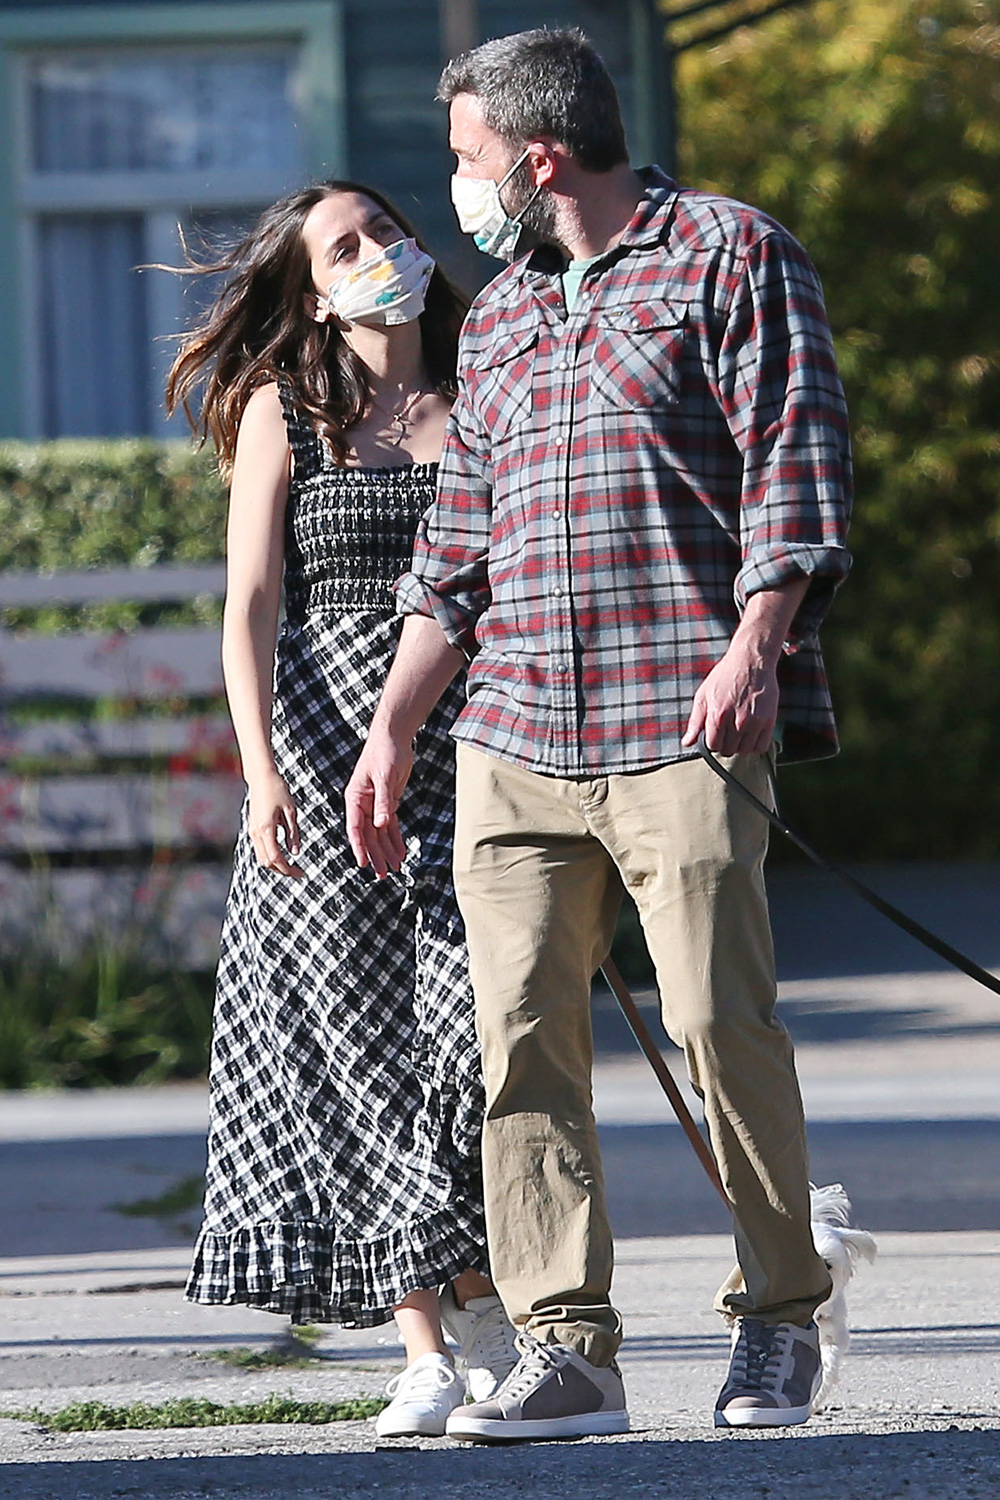 Ben Affleck And Ana De Armas Out And About On Abbot Kinney Blvd In Venice Beach During Quarantine